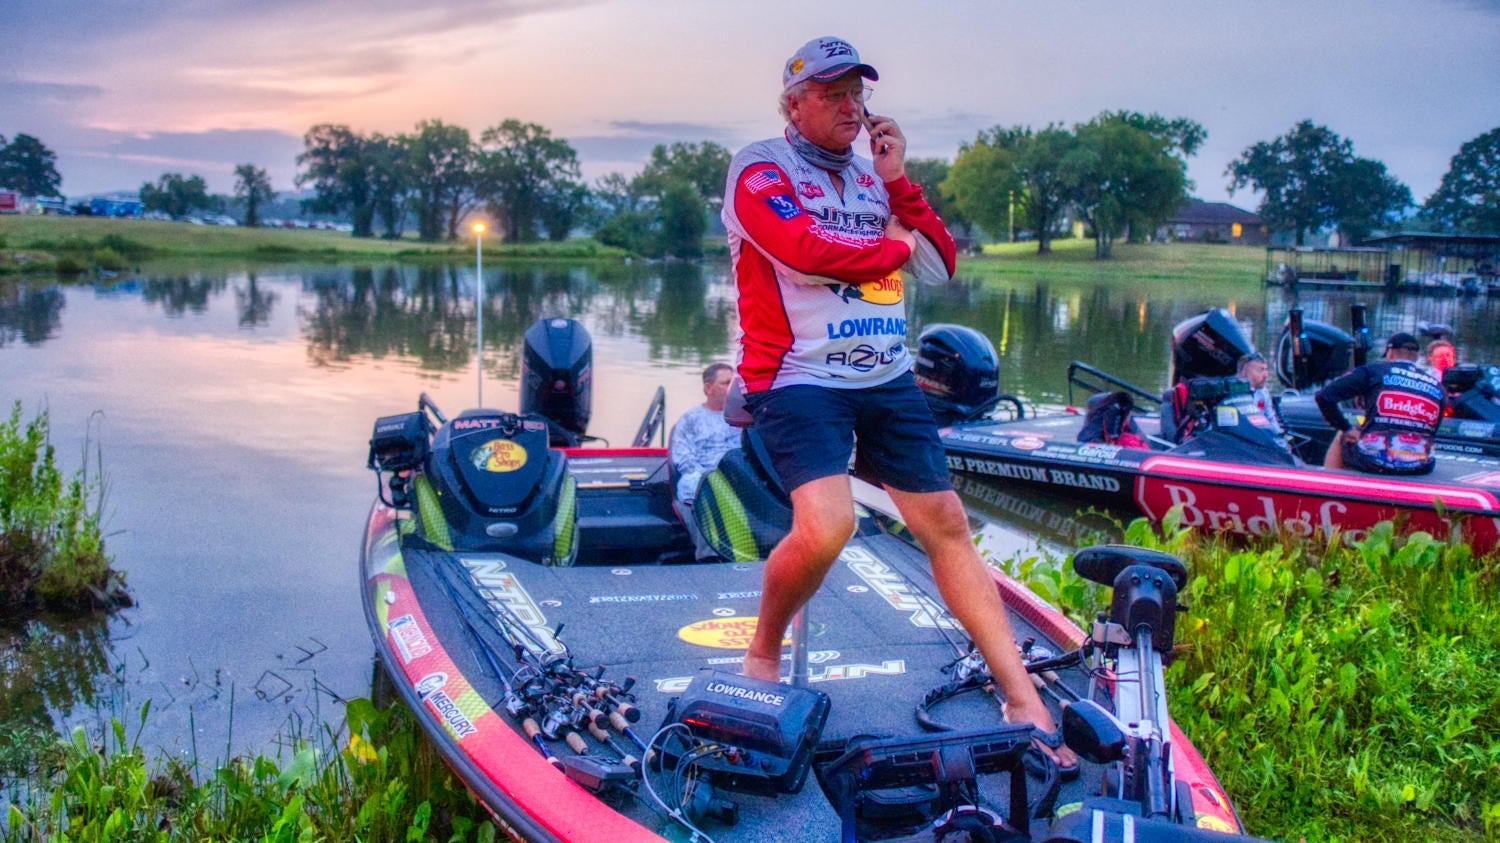 flw-cup-day2-5.jpg